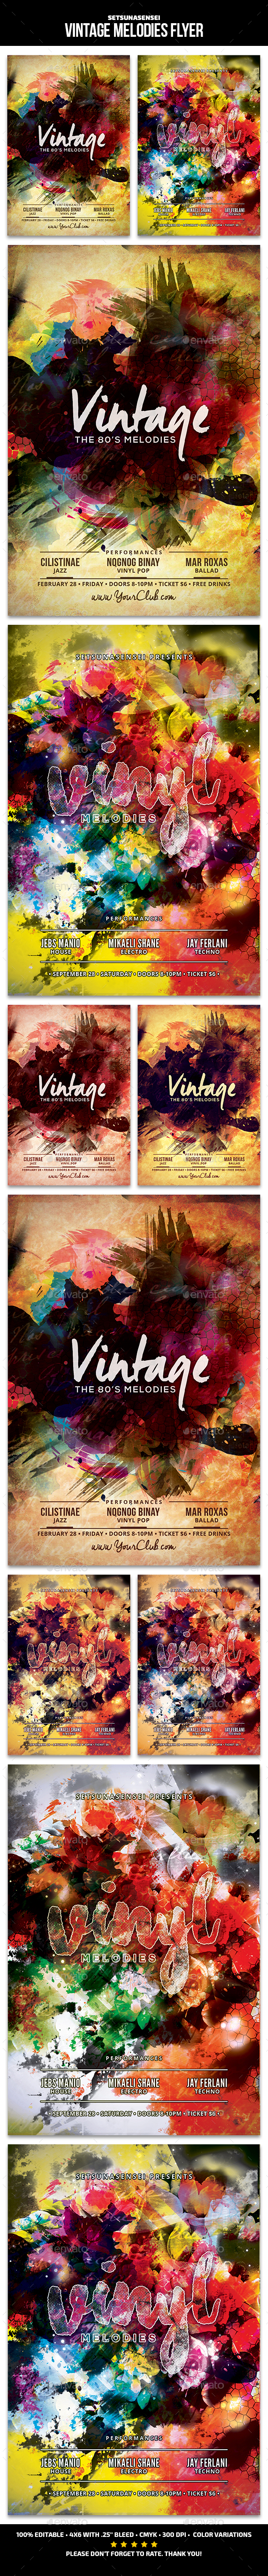 Vintage Melodies Flyer - Clubs & Parties Events